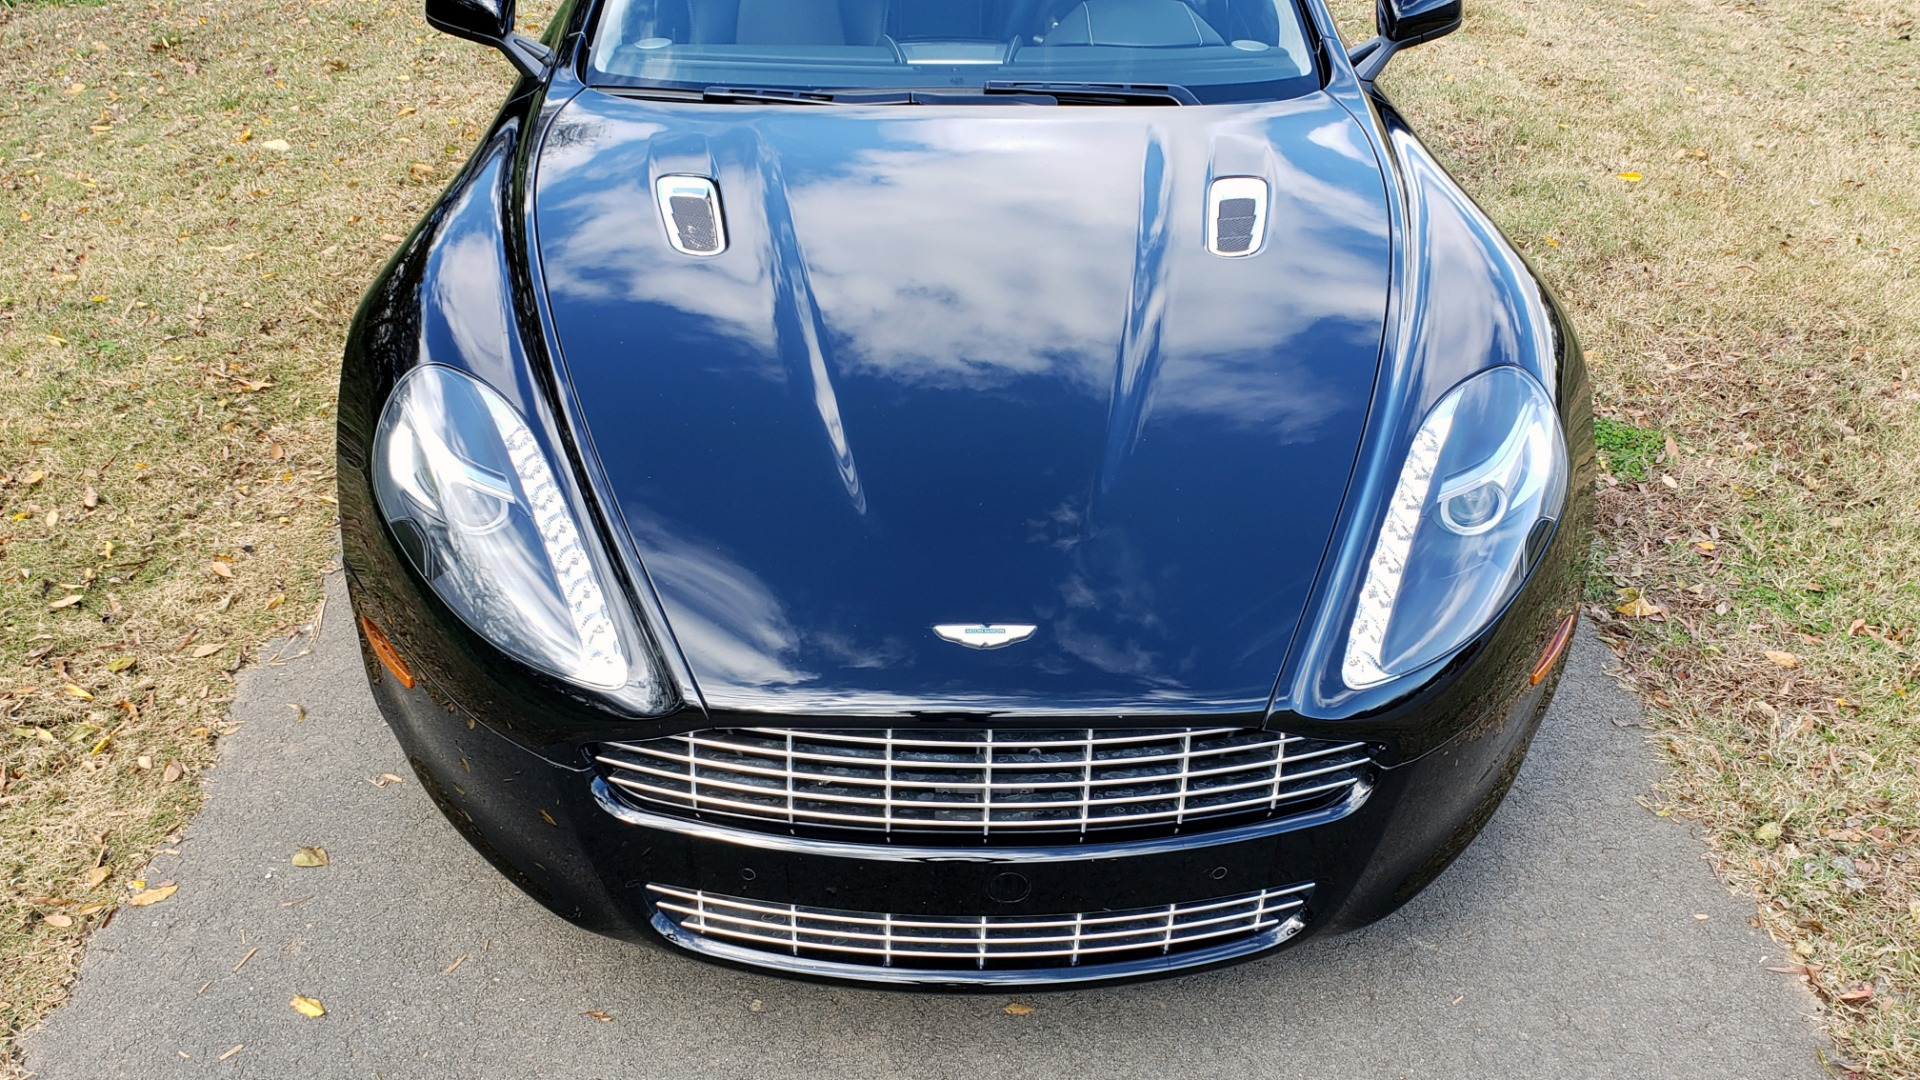 Used 2012 Aston Martin RAPIDE LUXURY 6.0L V12 / NAV / B&O SND / ENTERTAINMENT / REARVIEW for sale Sold at Formula Imports in Charlotte NC 28227 14